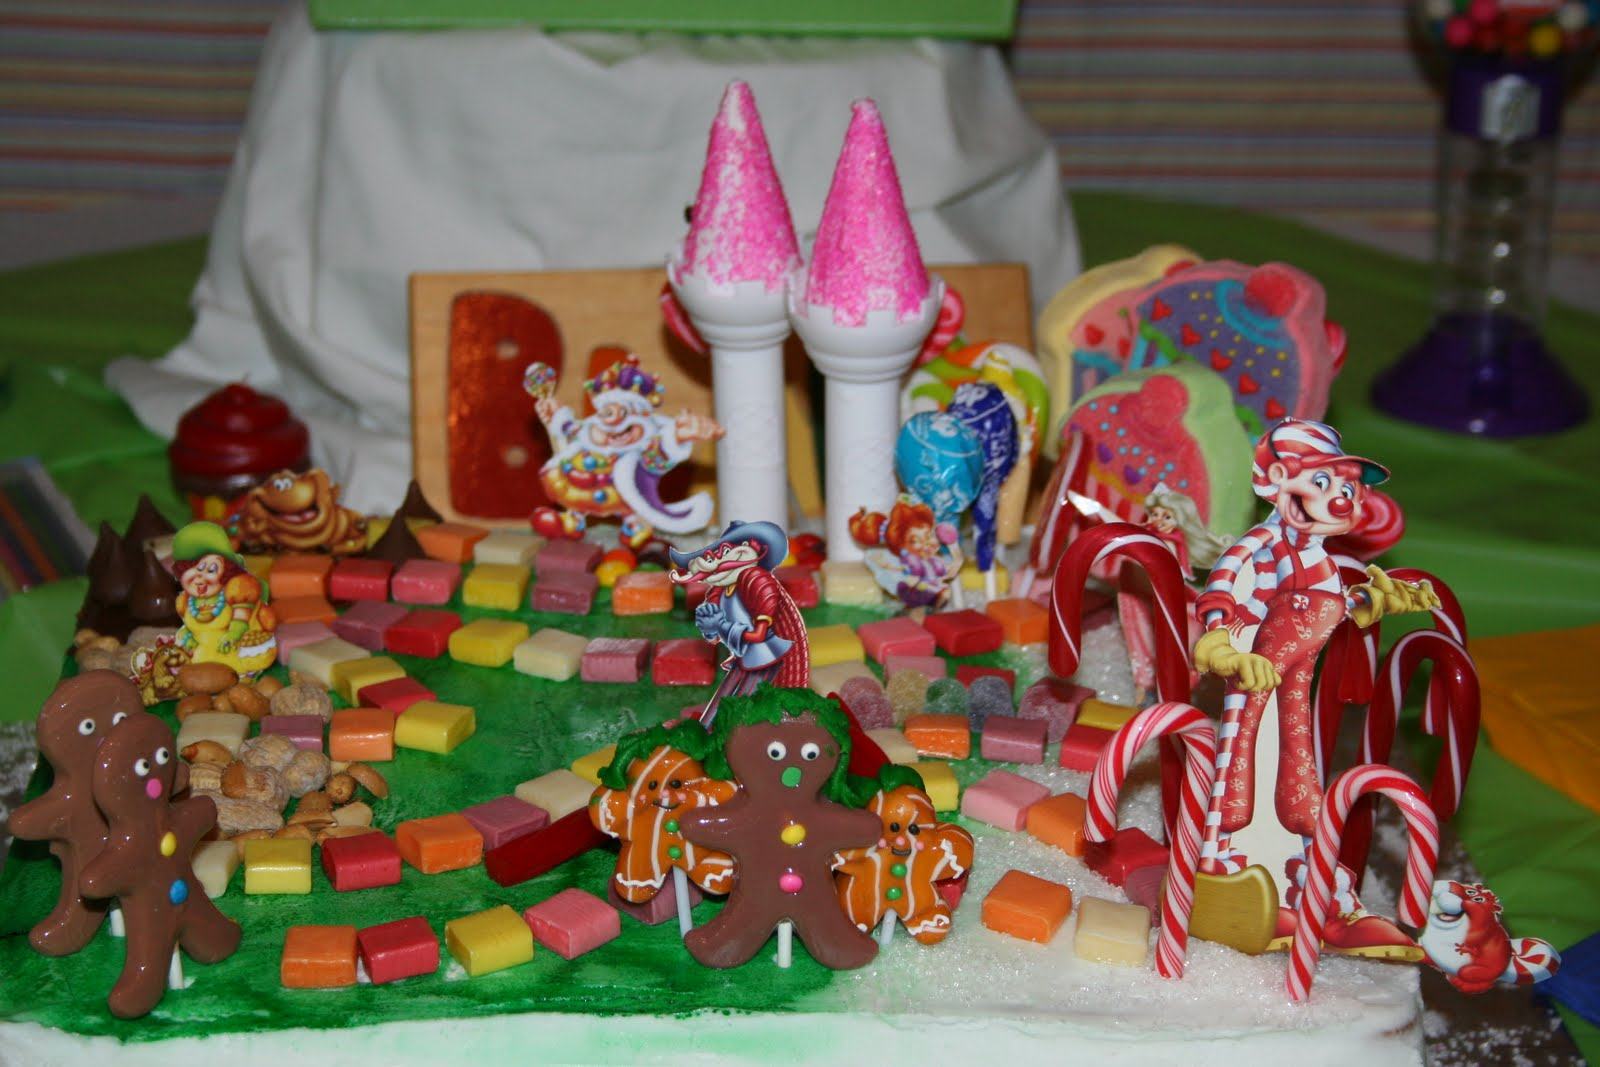 The Dukes Family Candy Land